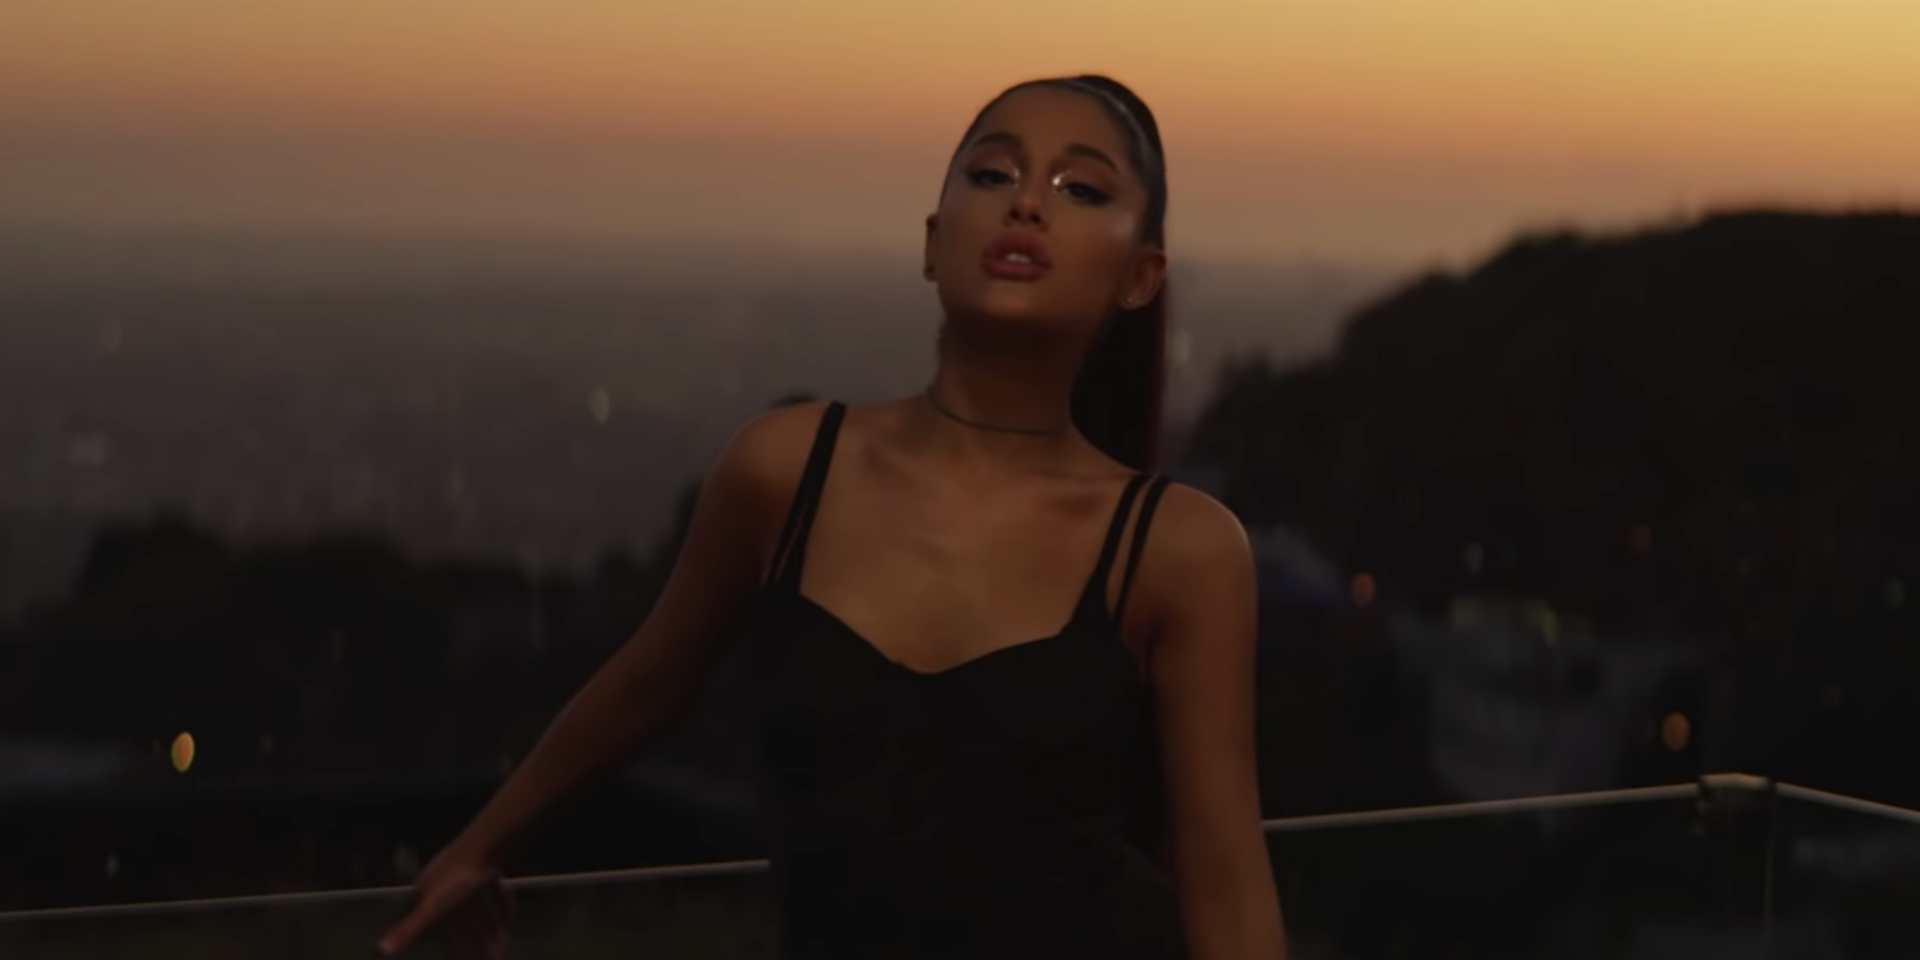 Ariana Grande releases new album thank u, next, shares music video for 'break up with your girlfriend, i'm bored'